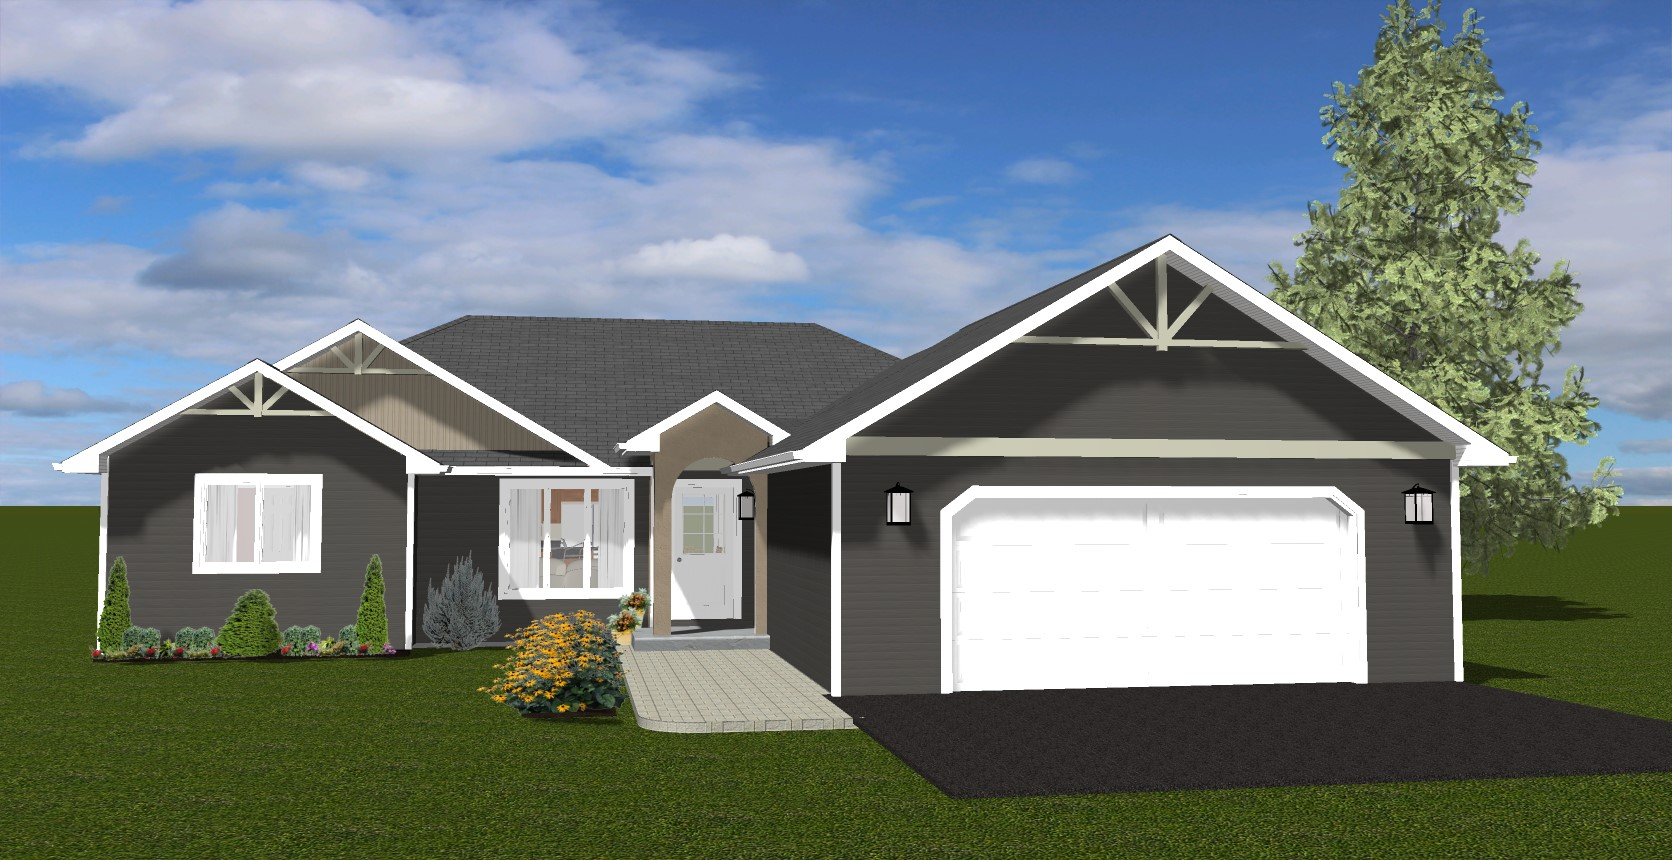 //kibhomes.com/wp-content/uploads/2020/02/Hardie-Rich-Expresso.jpg